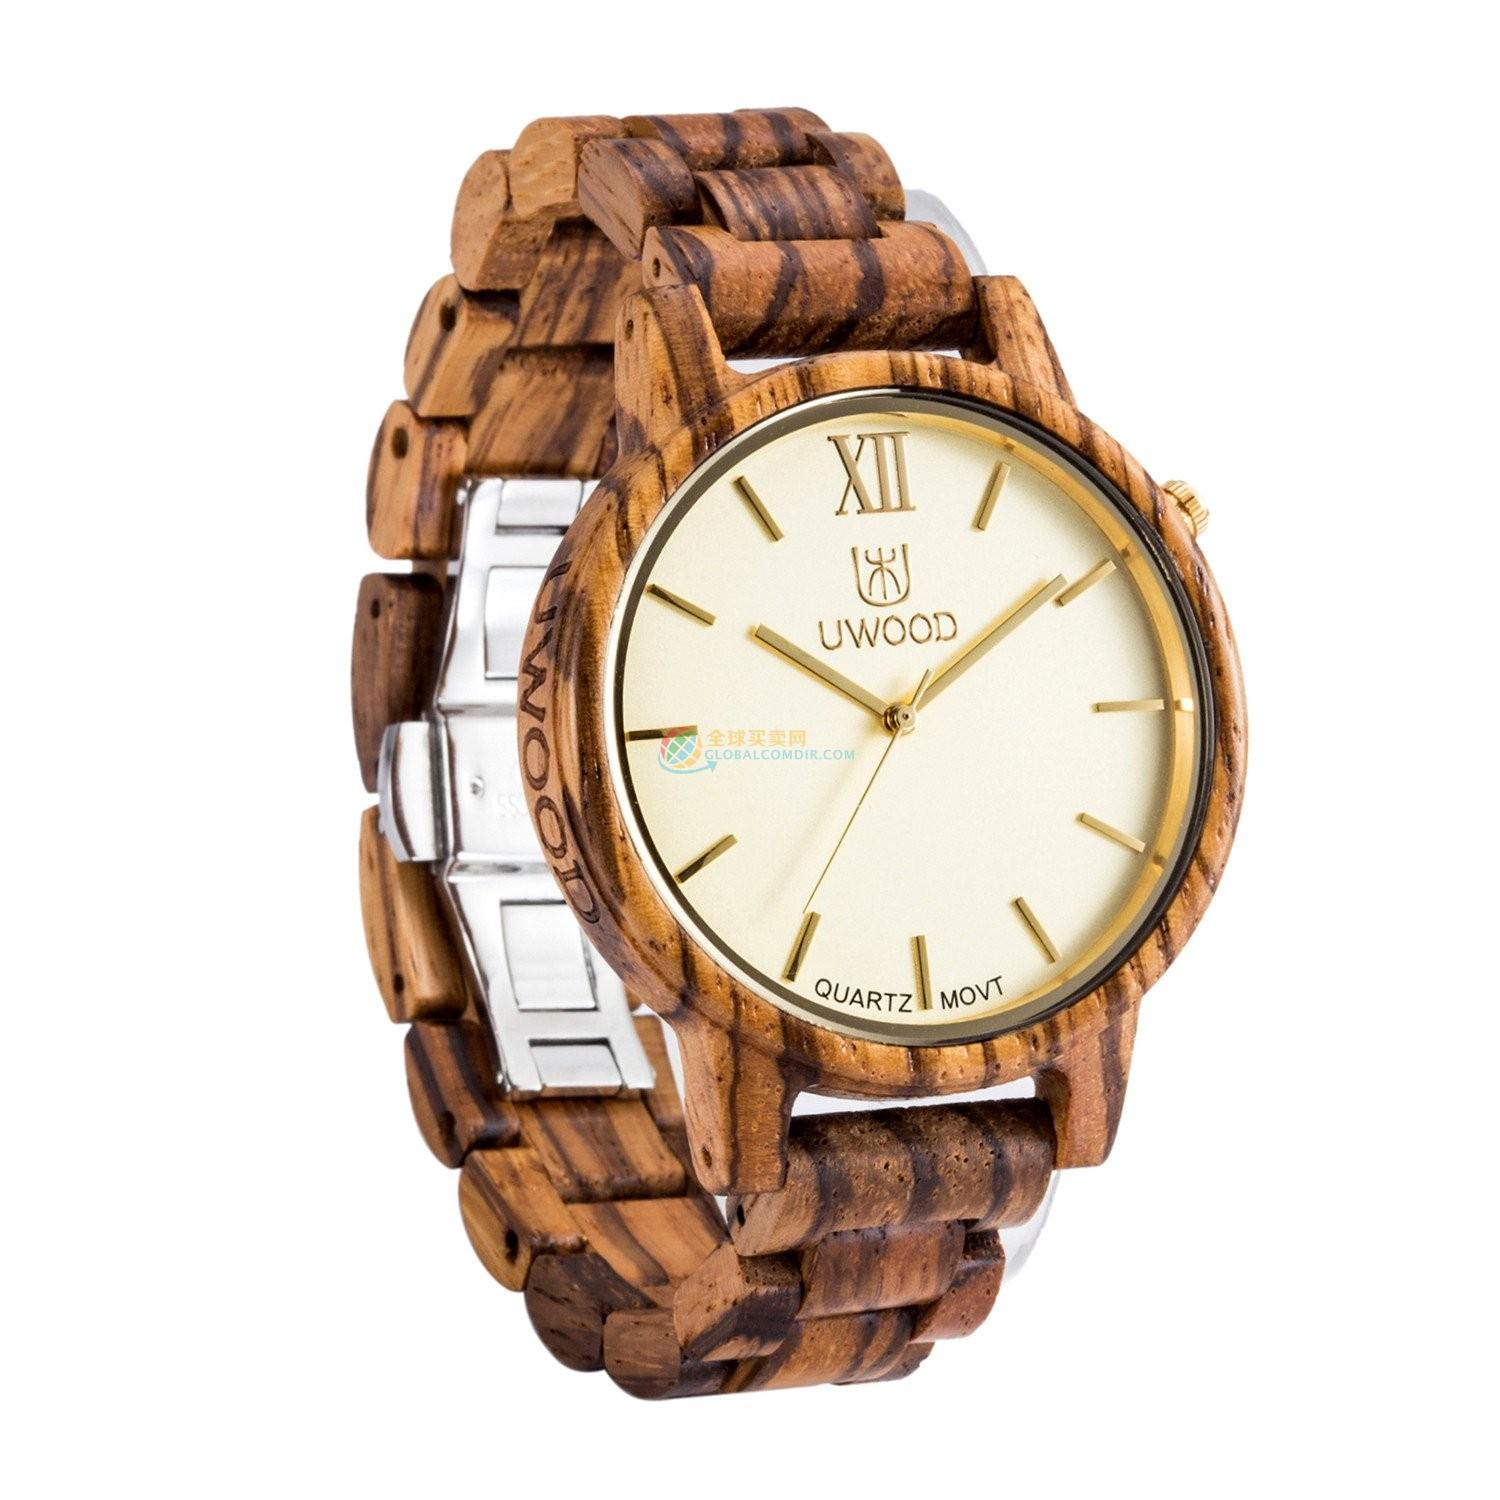 WoodWatch007 Zebra Wood Watch for Men - Super Slim